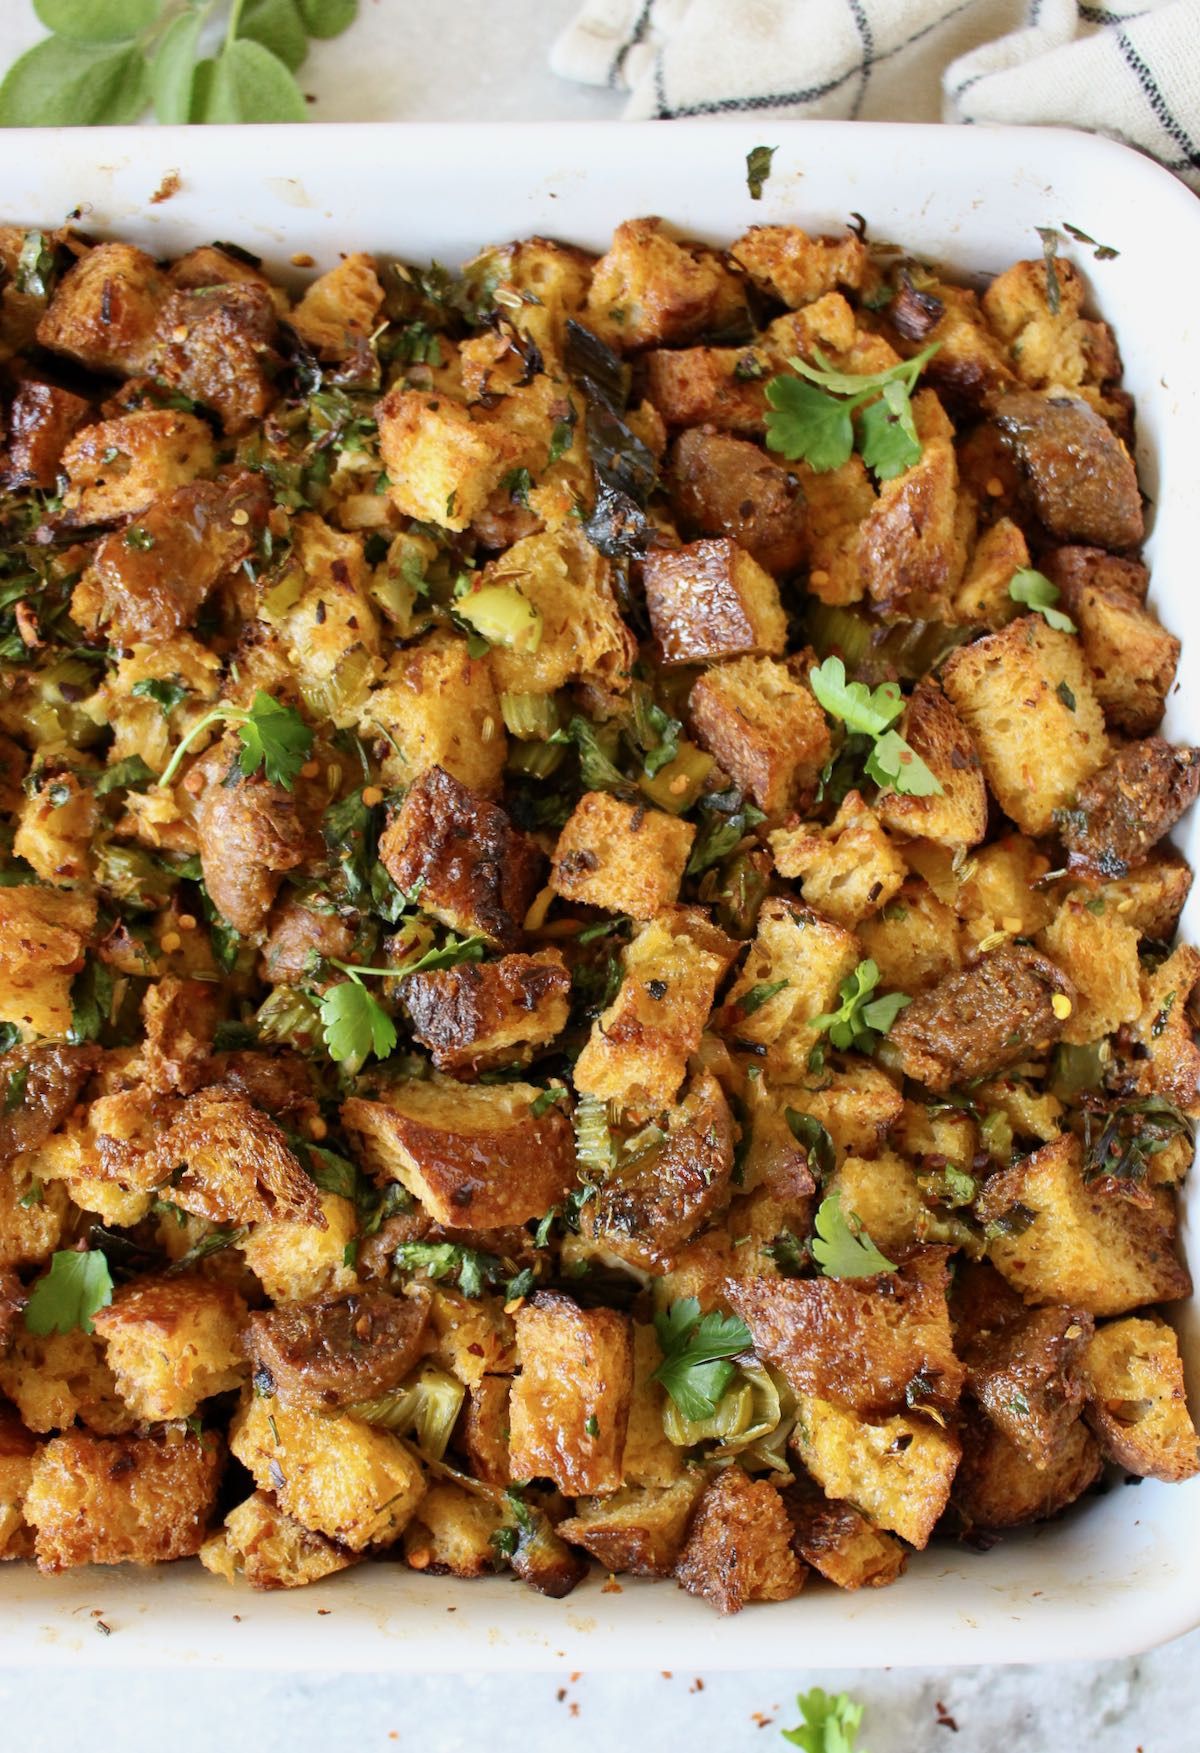 Italian bread stuffing with meatless sausage